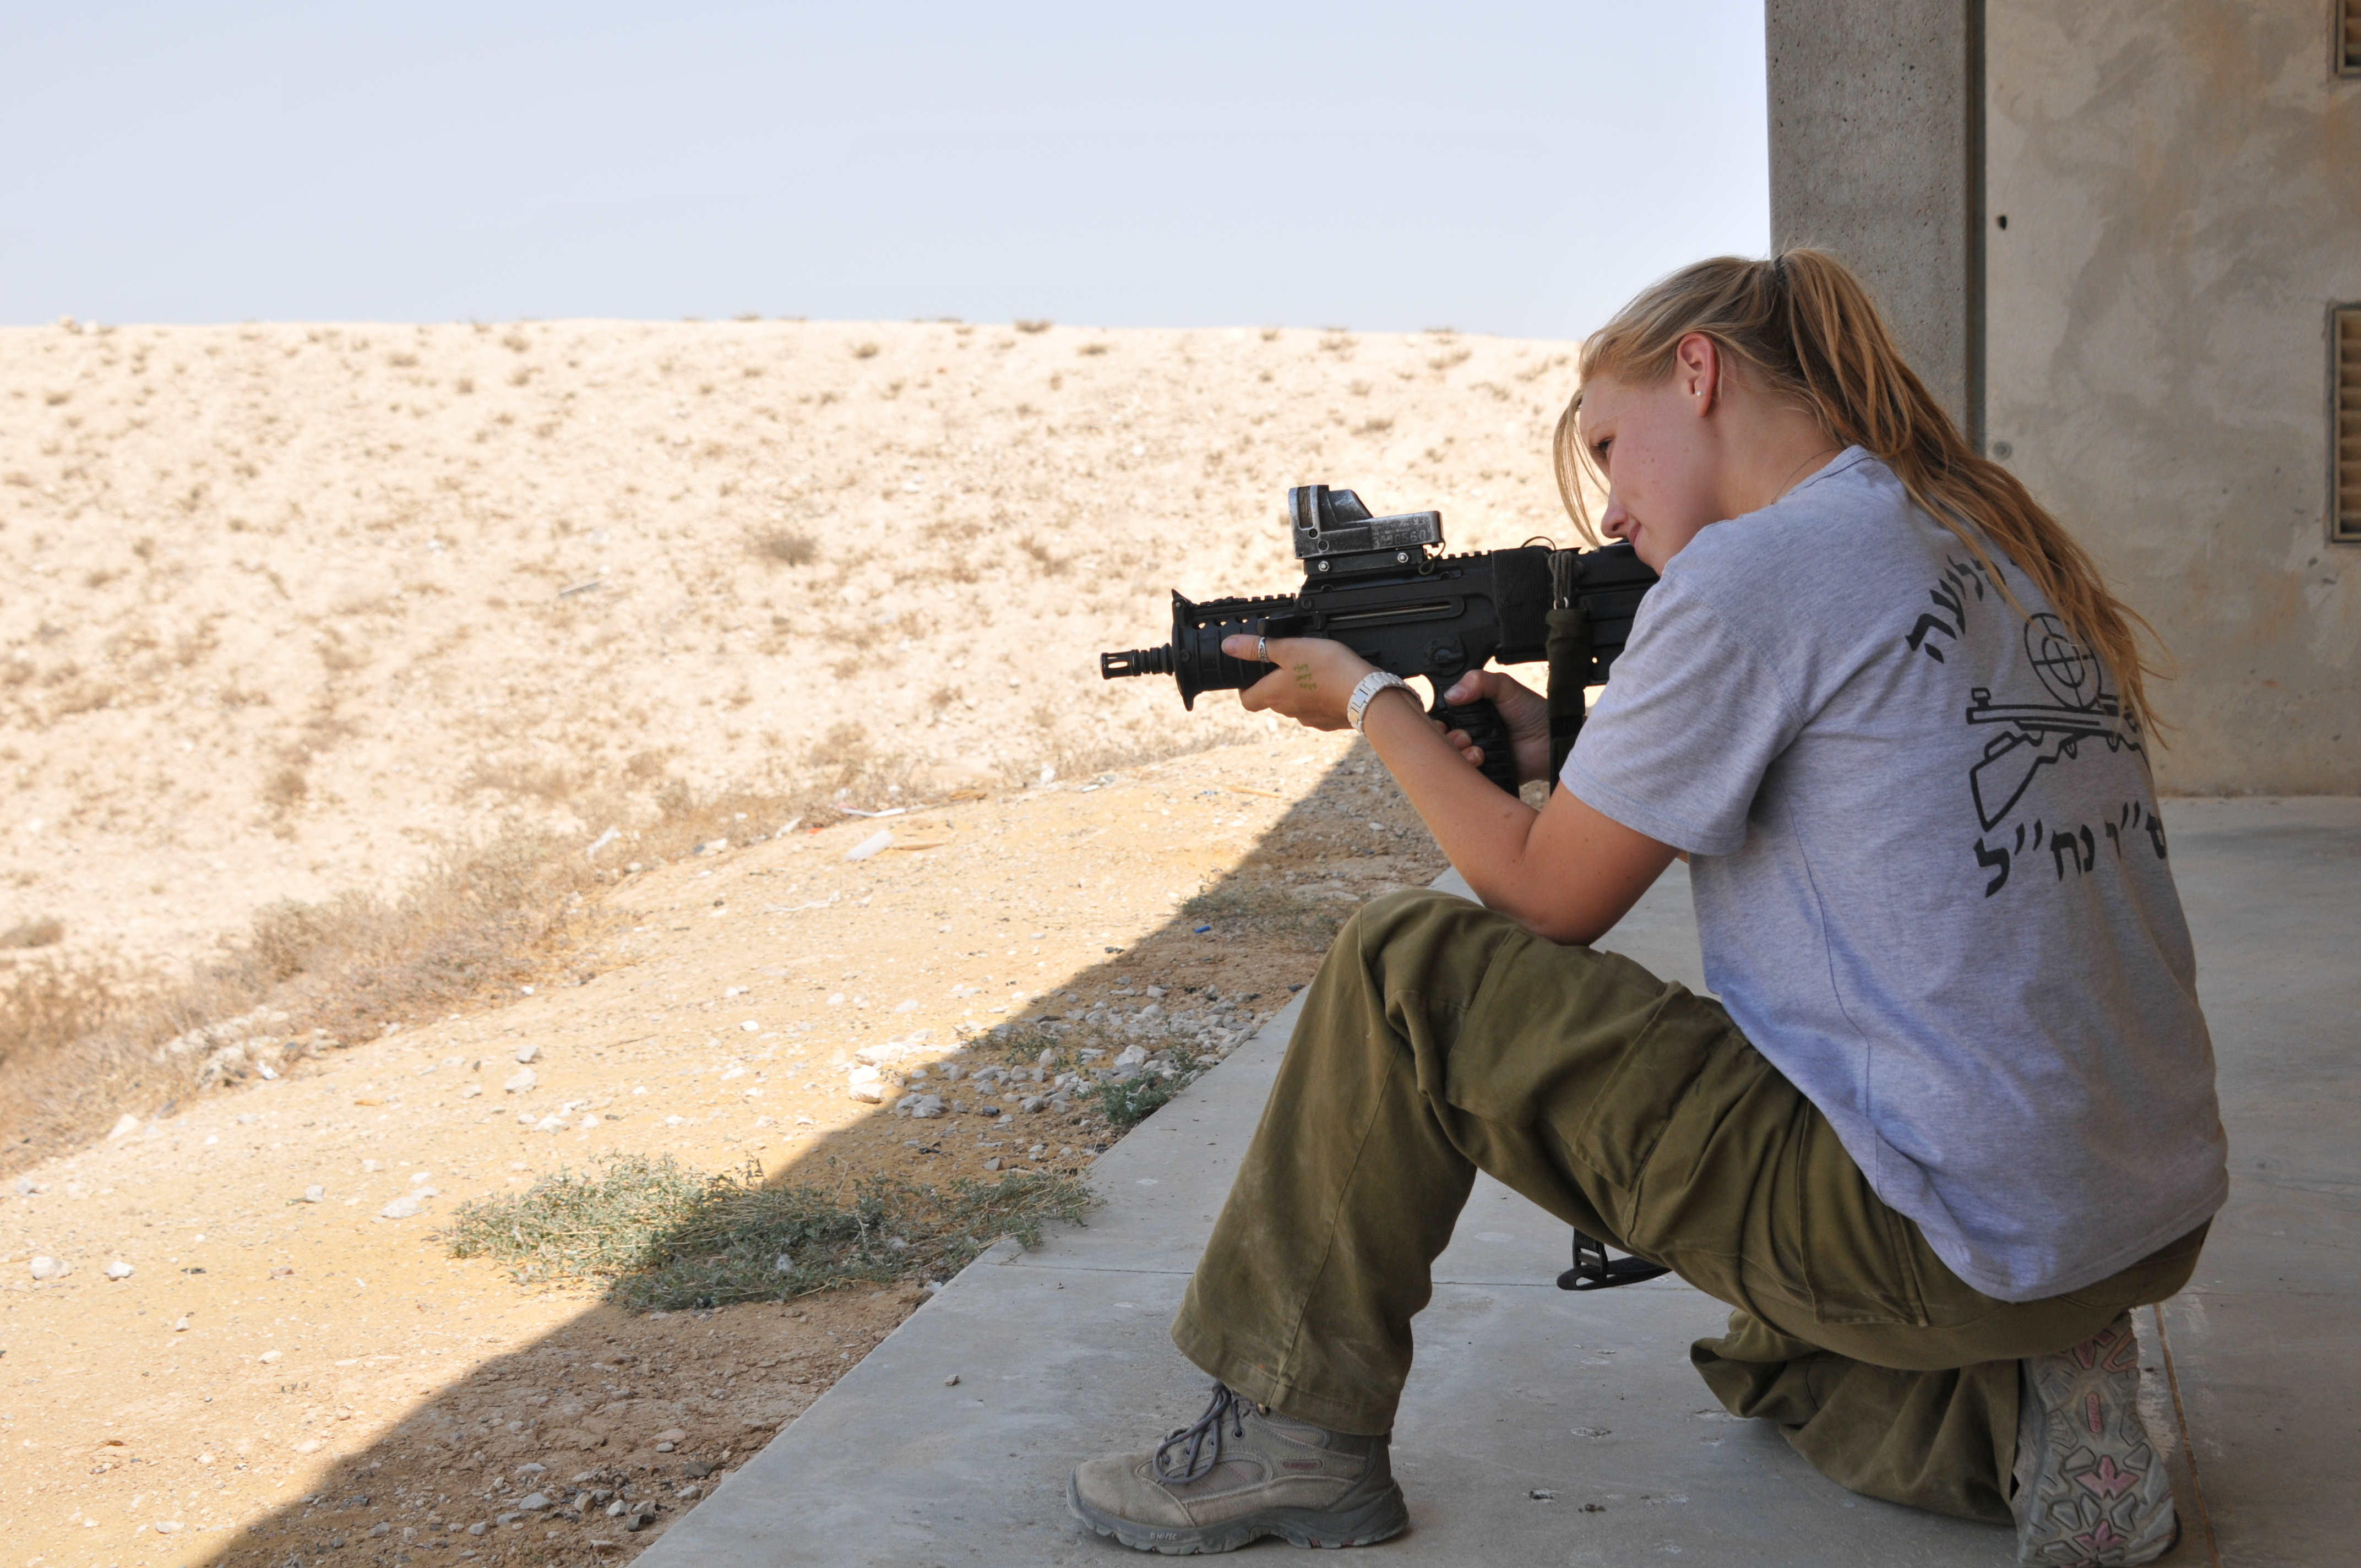 Girls & Guns 4k Ultra HD Wallpaper and Background Image ...